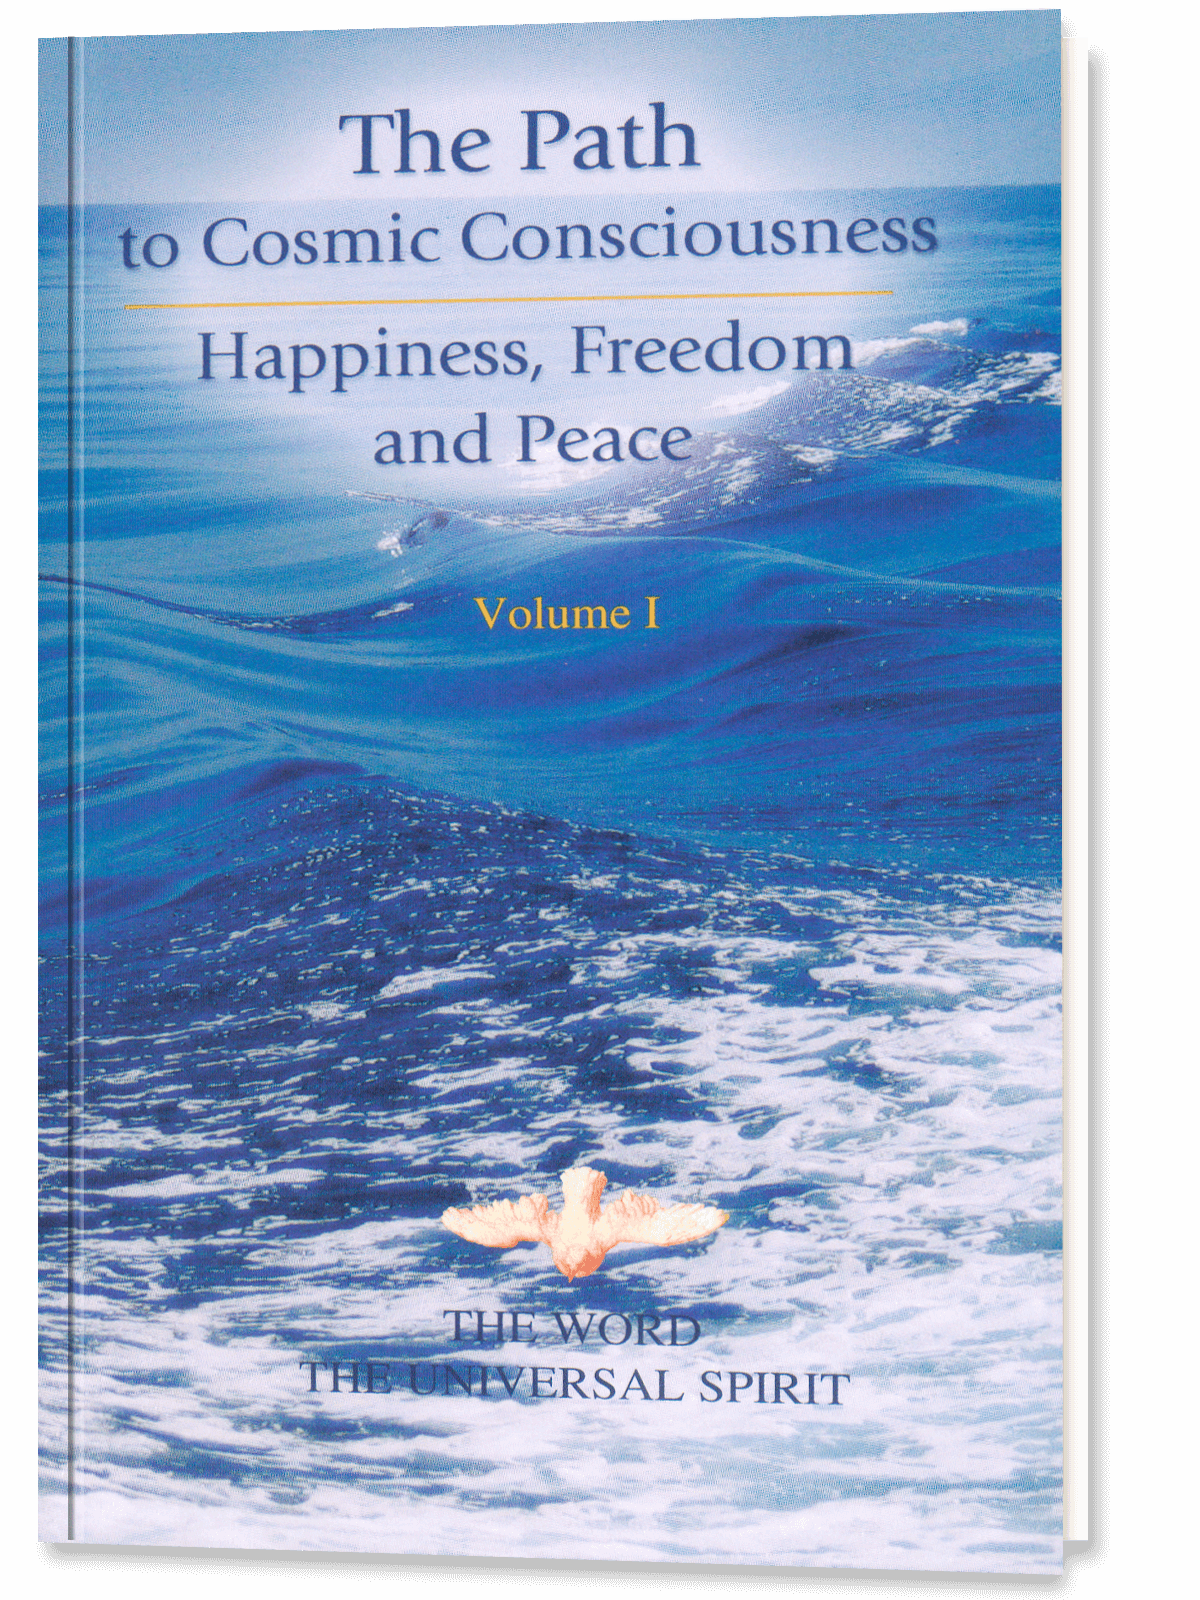 The Path to Cosmic Consciousness